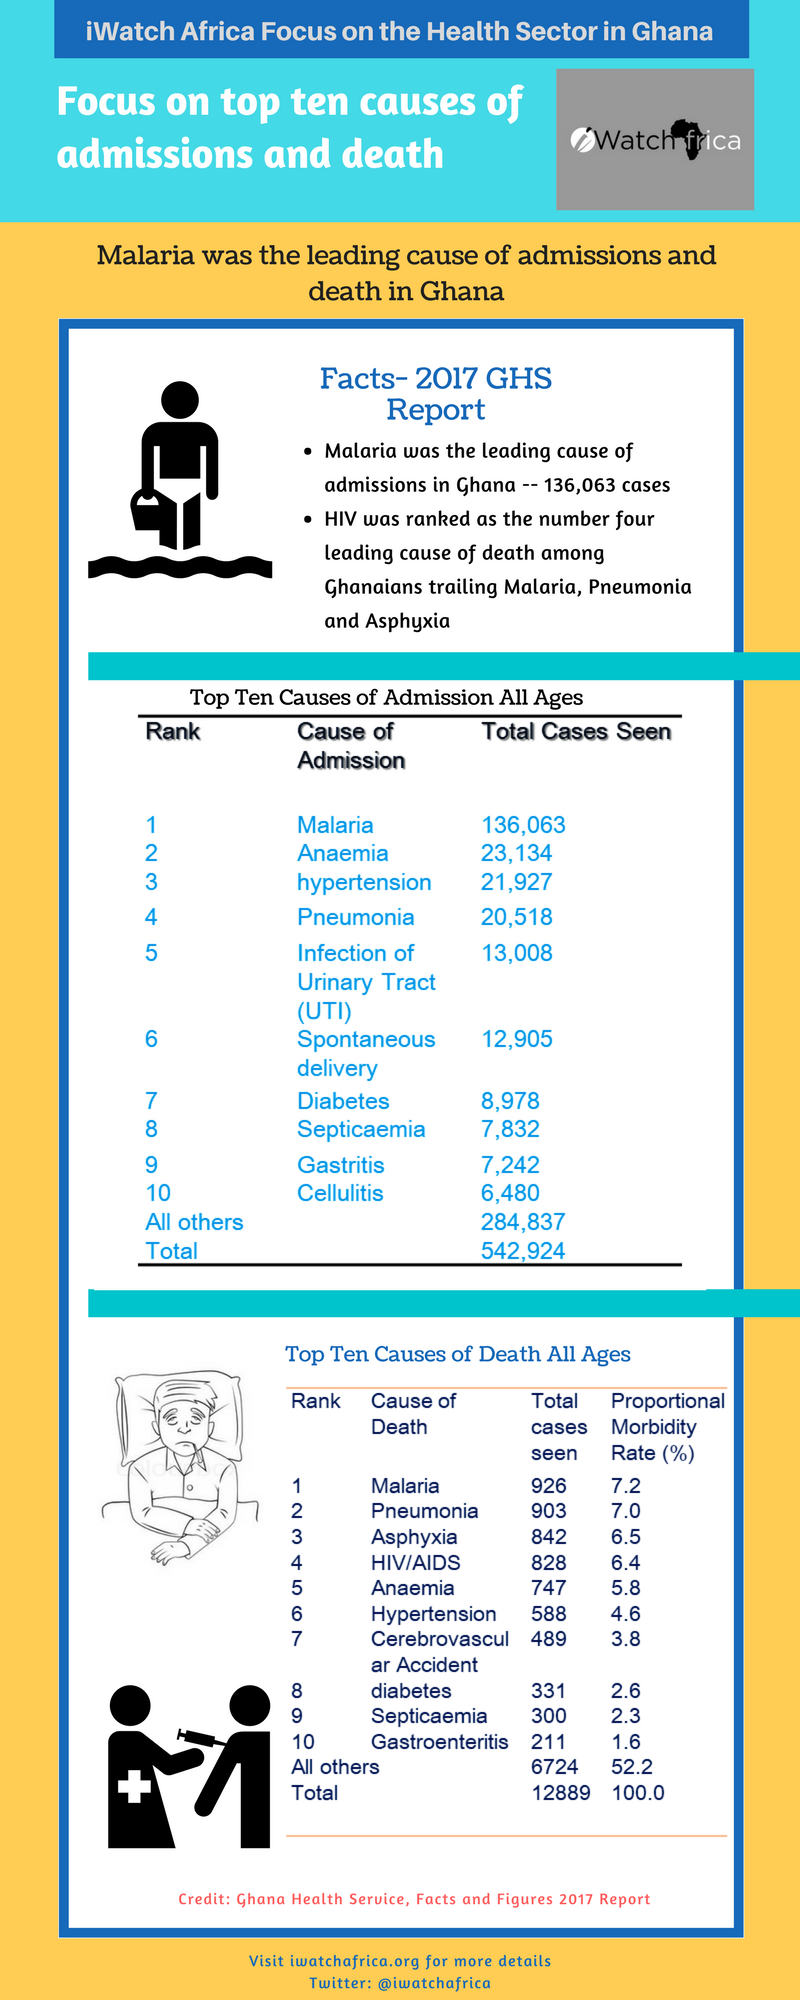 Top ten causes of admissions and death in Ghana [infographic] iwatchafrica.org